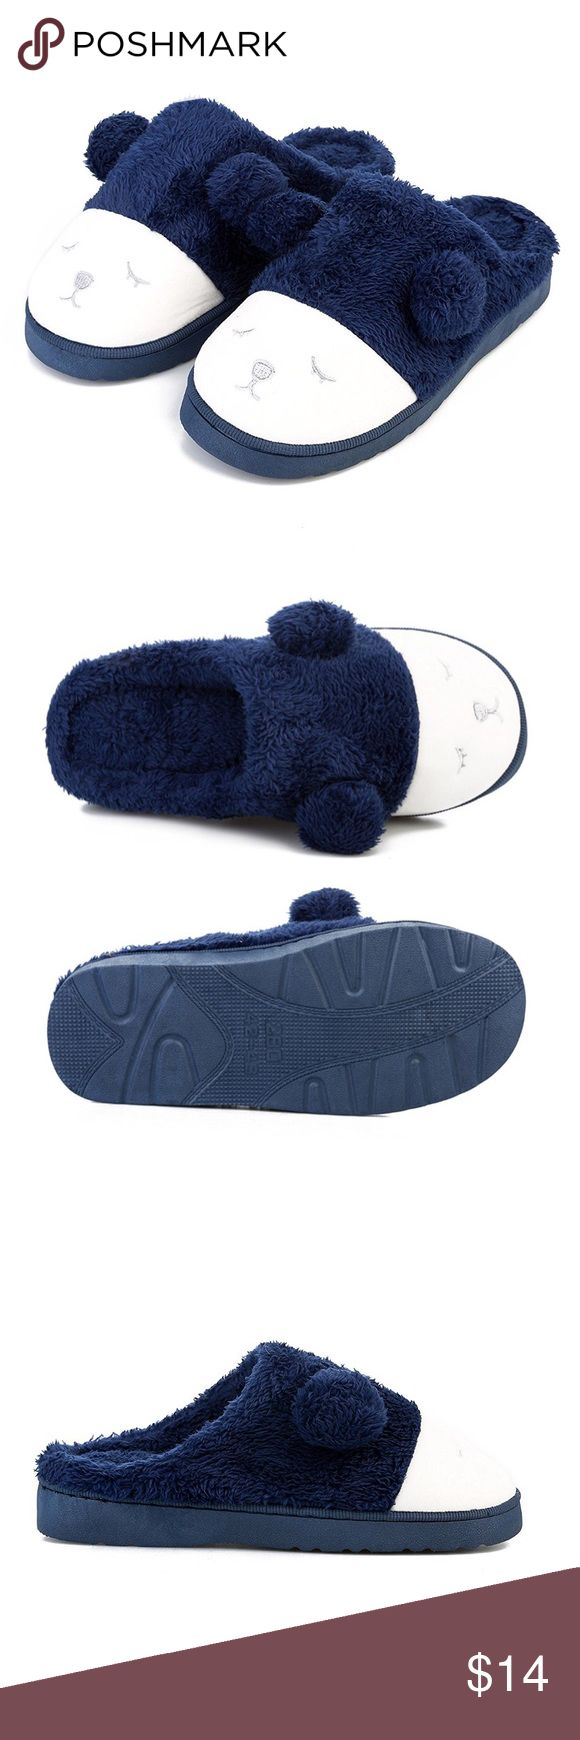 **NWT** Men's Cute Fuzzy Plush Slippers Men's dark blue fuzzy plush indoor slippers with a cute animal face on the front Size 9 Machine Wash Cold Brand New With Tags! Shoes Loafers & Slip-Ons